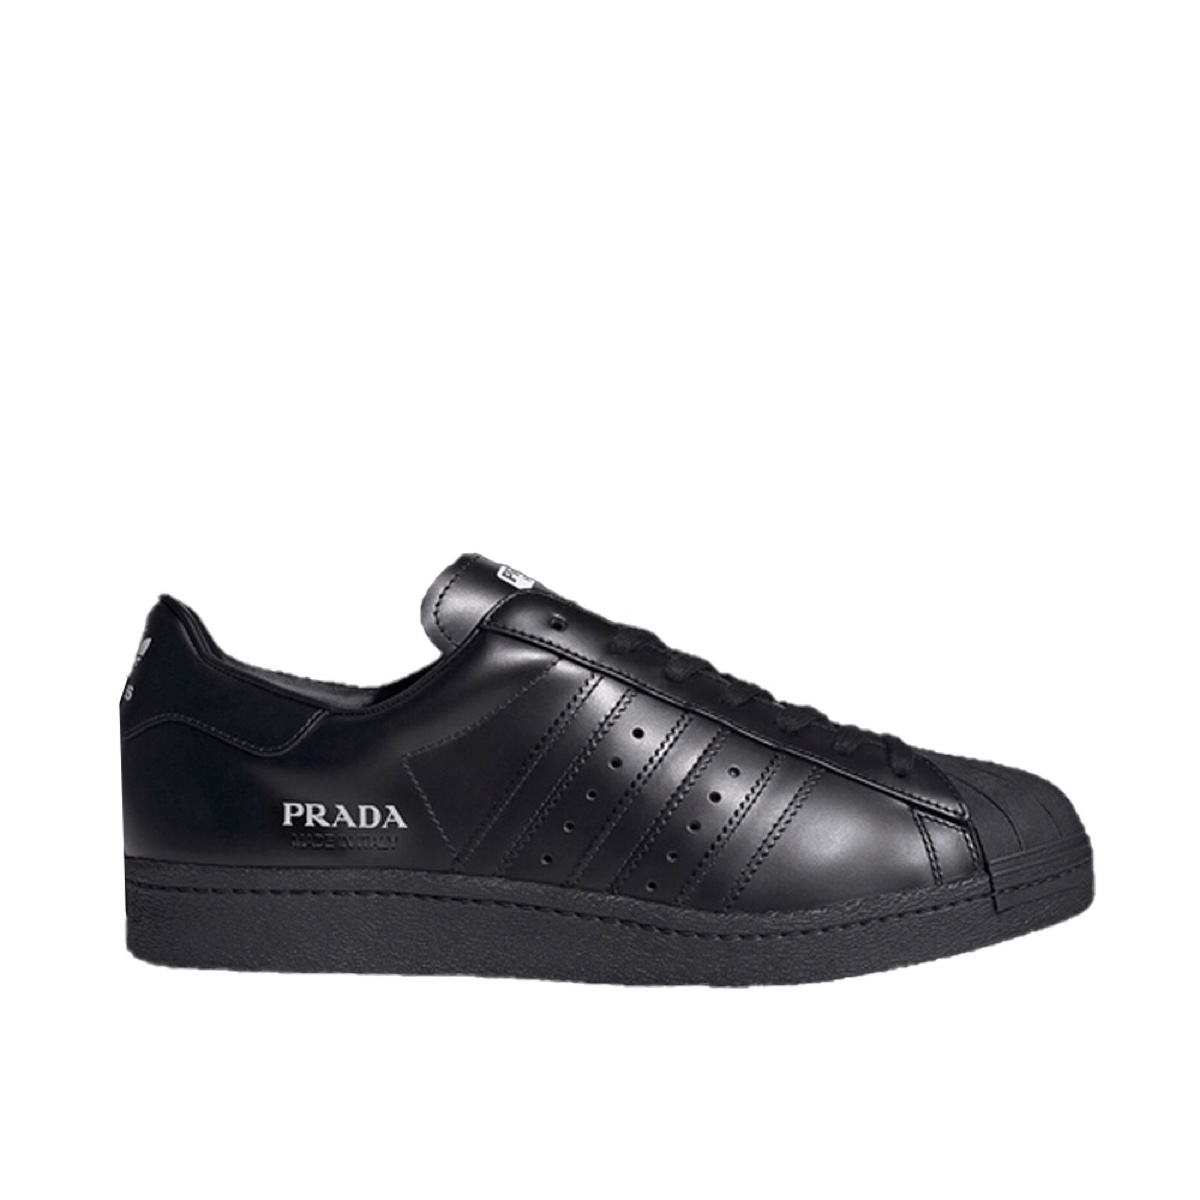 Prada x Superstar 'Core Black'